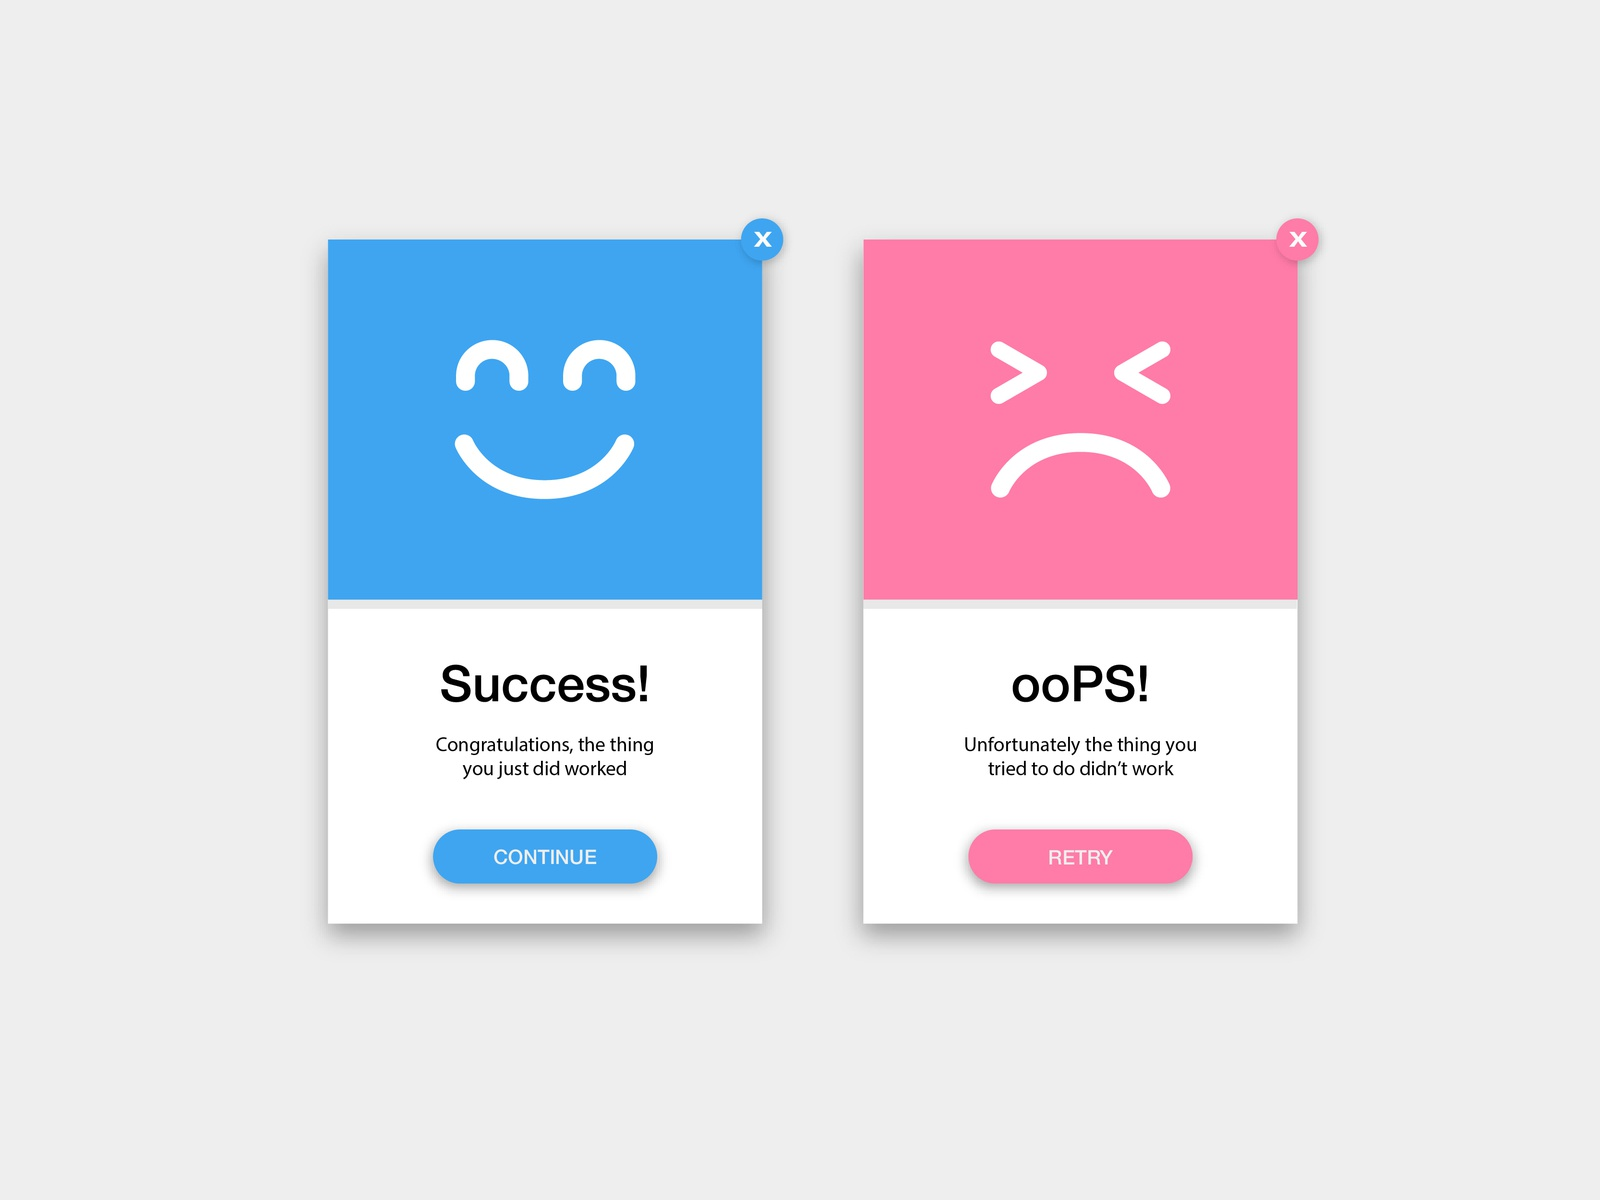 Daily UI   011 — Flash Messages daily design agency design app design graphic  design graphic ux design ux  ui uidesign ui-ux app designers app designer app design app apps application app web design company web design agency web design web